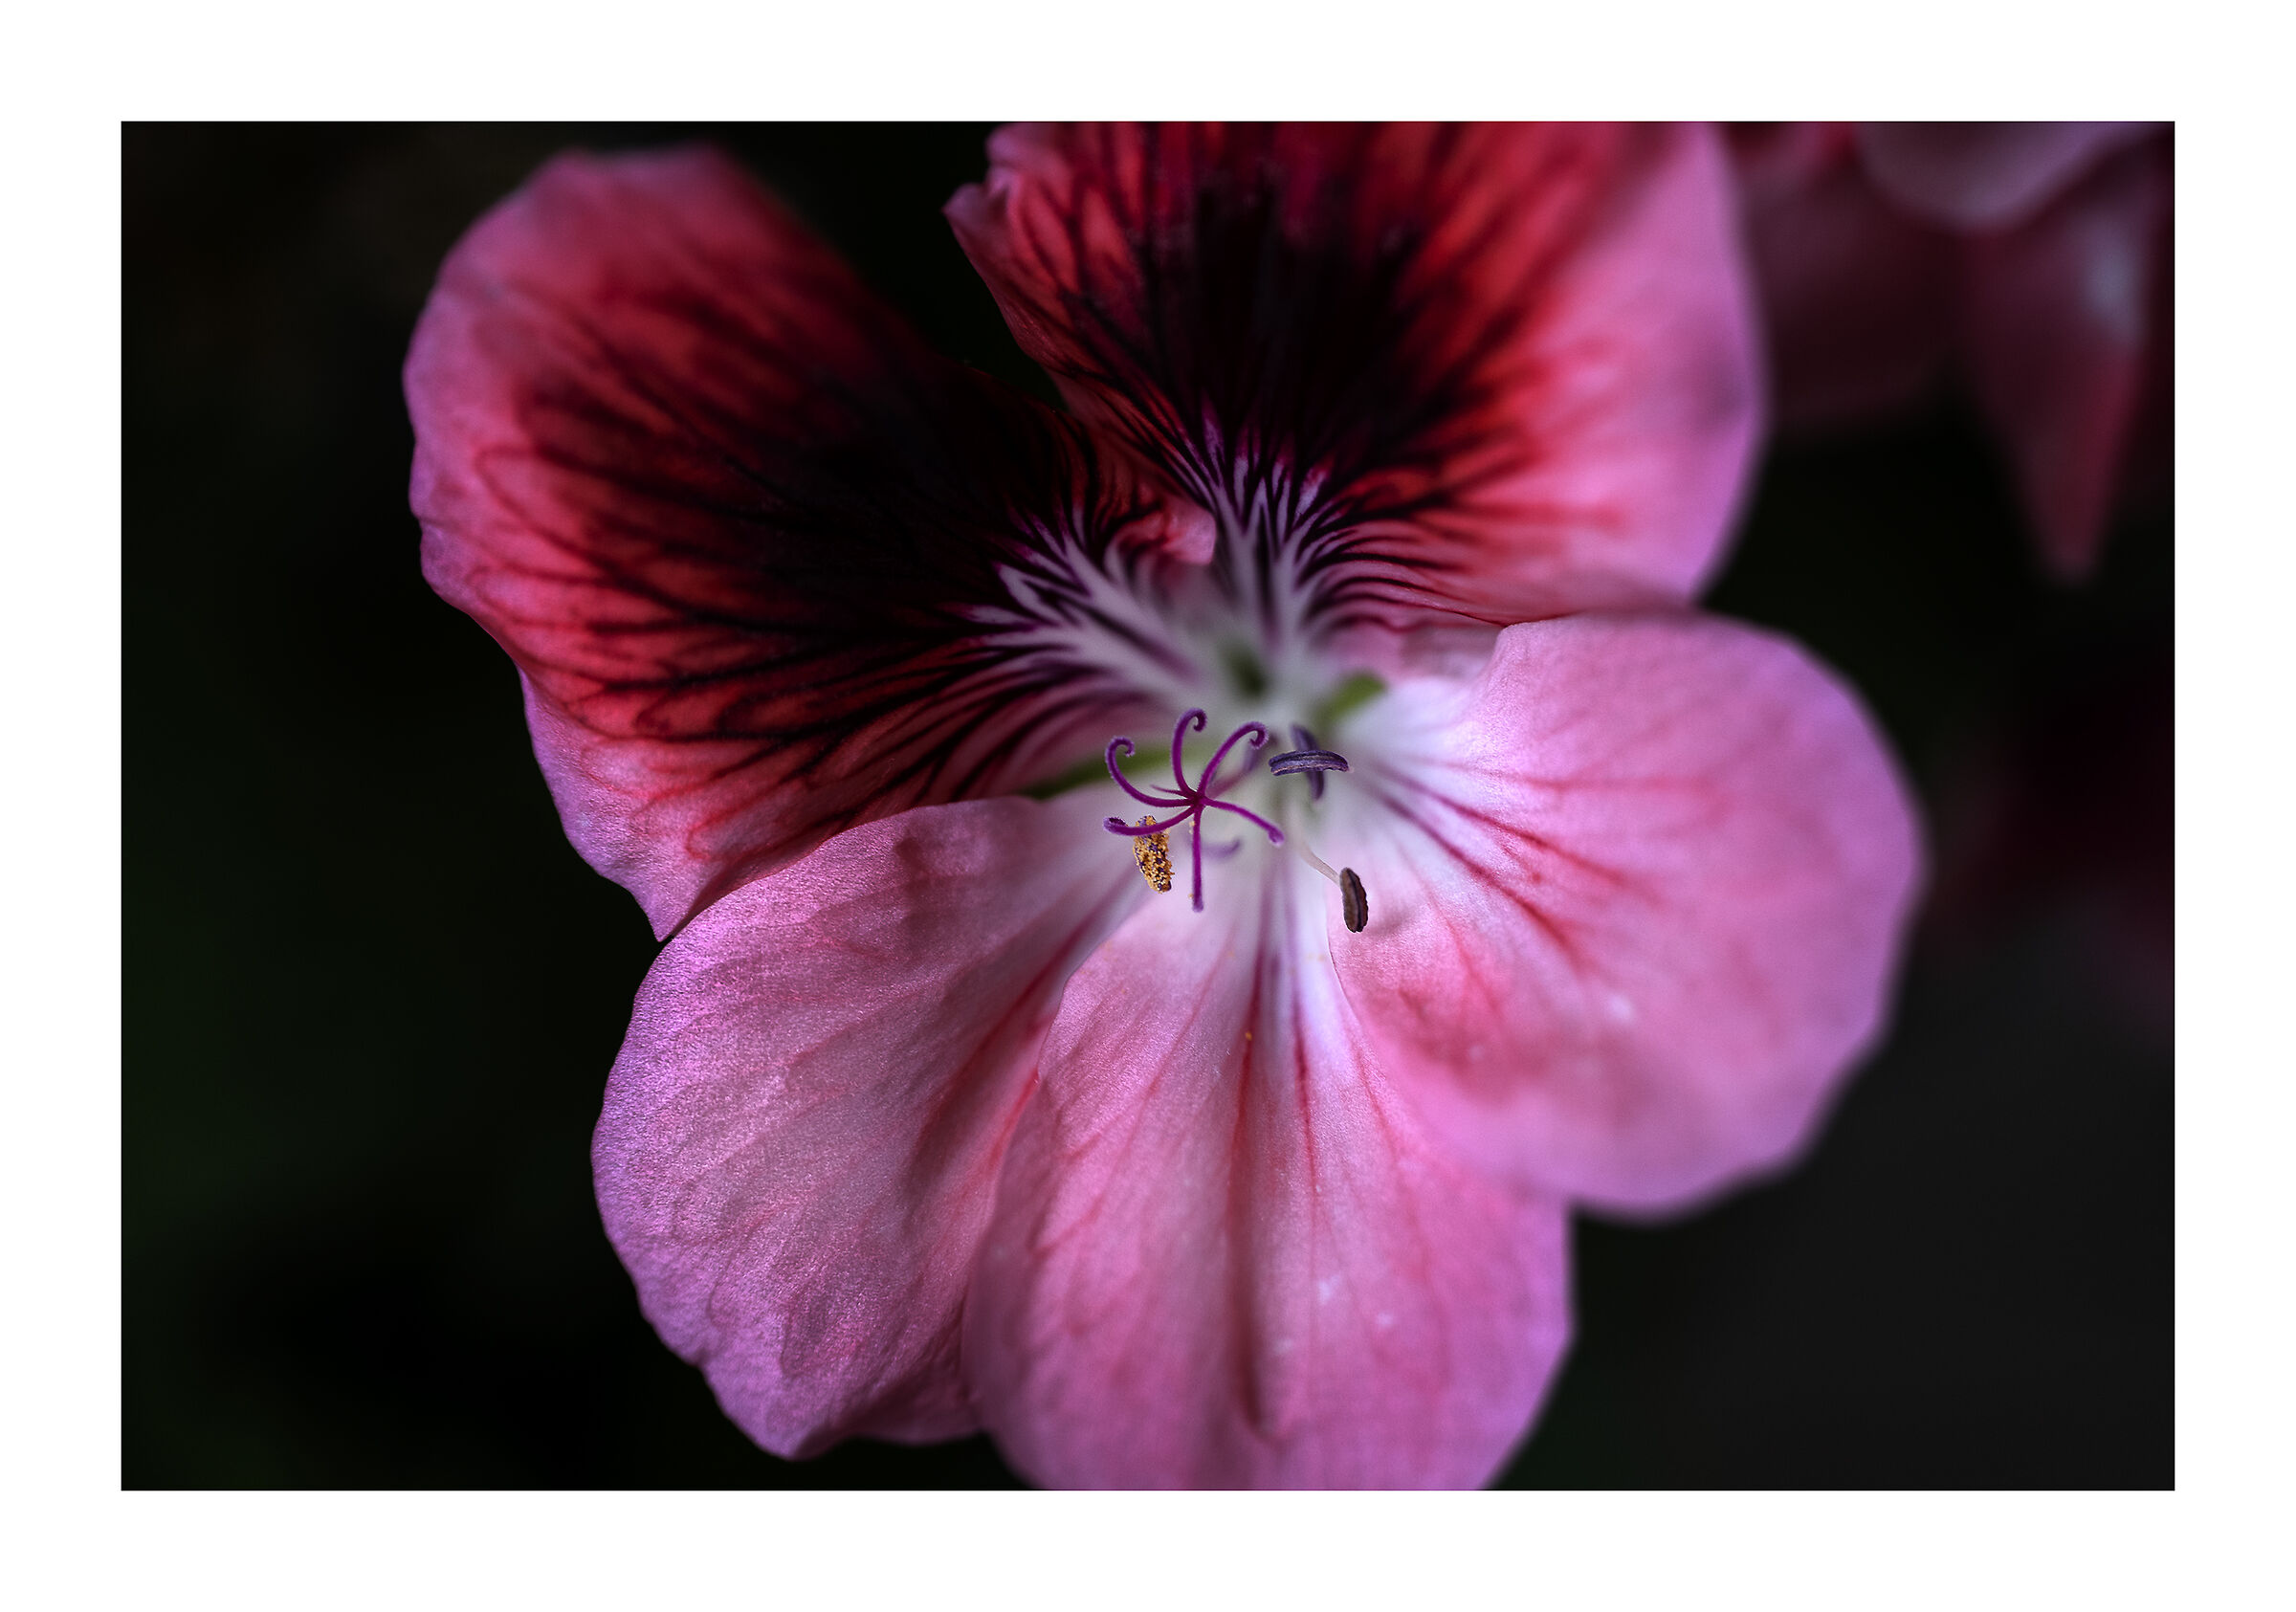 Detail of geranium......